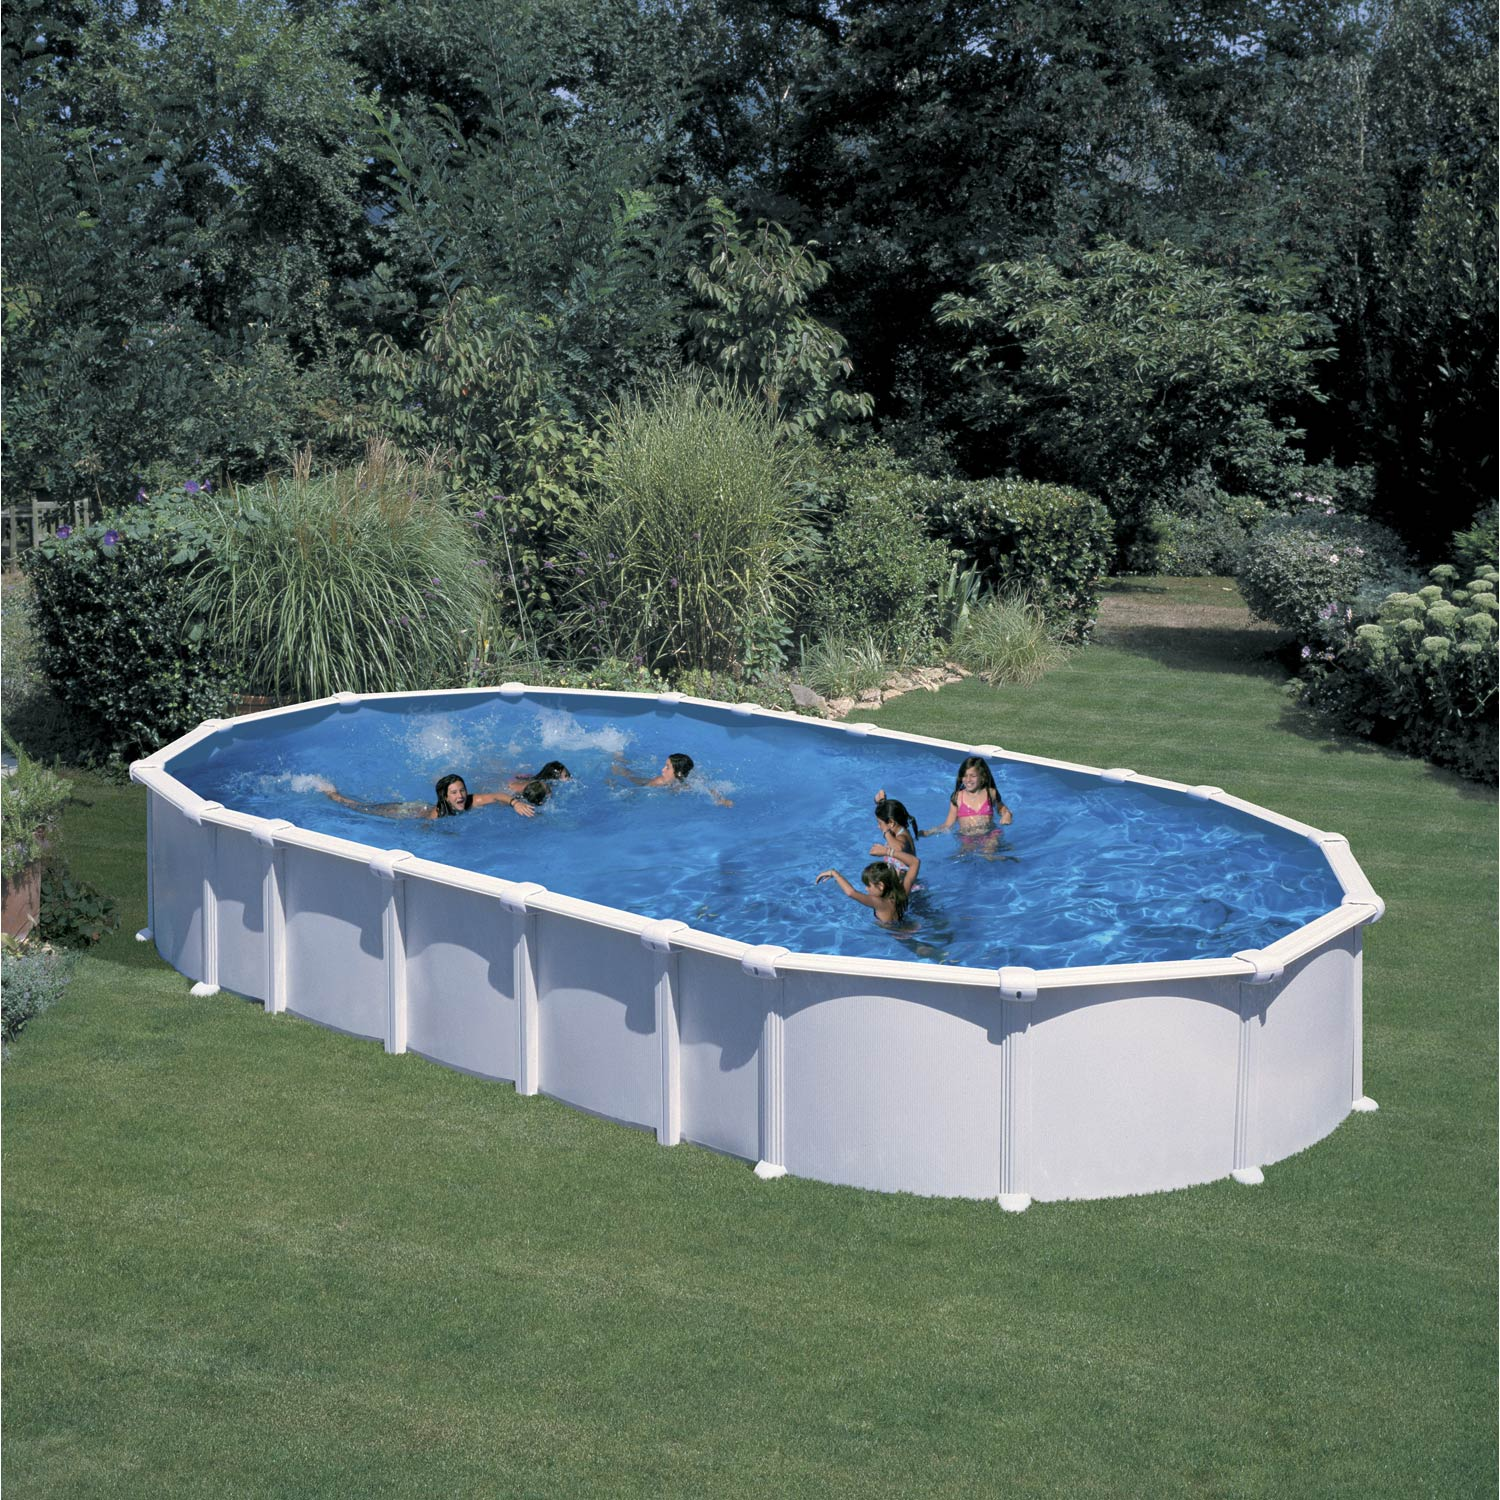 Piscine hors sol acier san clara l 6 4 x l x h for Piscine semi rigide rectangulaire